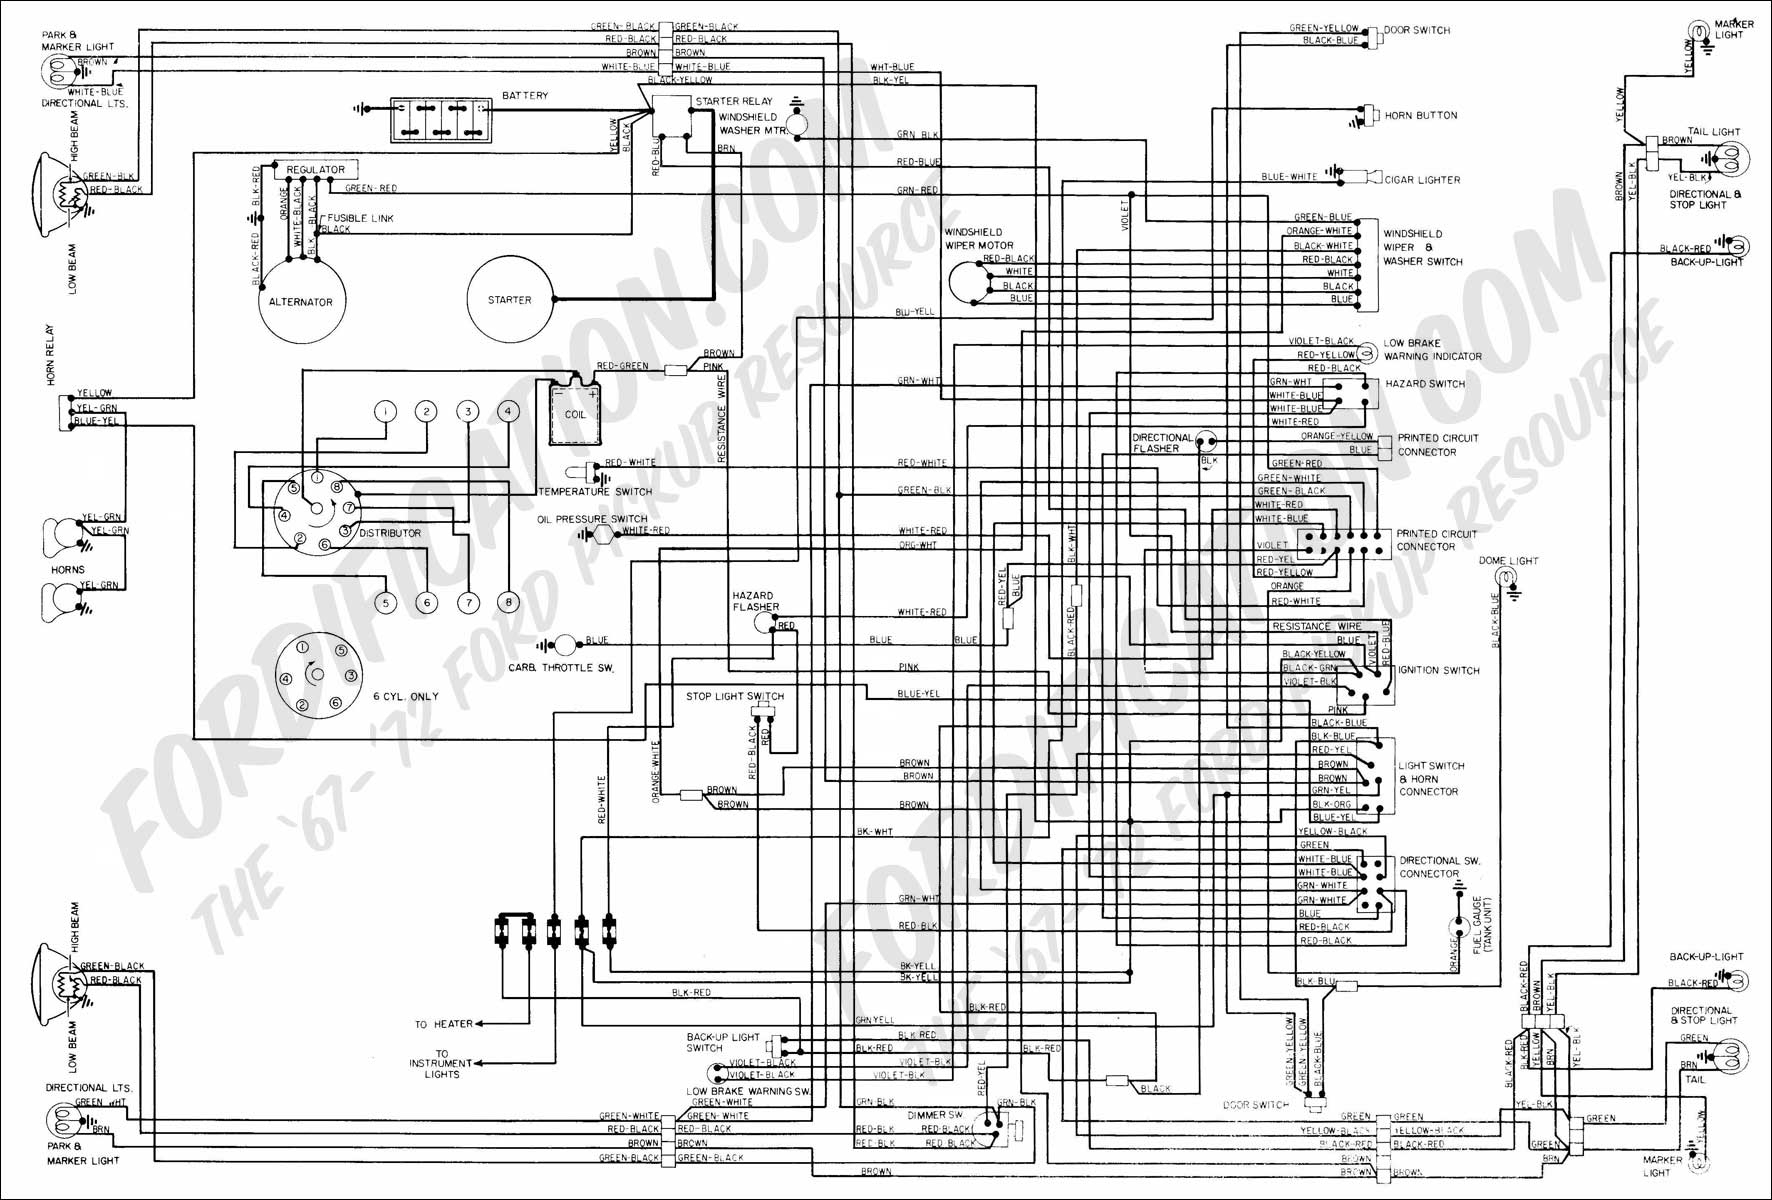 F150 Wiring Diagram - Today Wiring Diagram - Trailer Wiring Harness Diagram